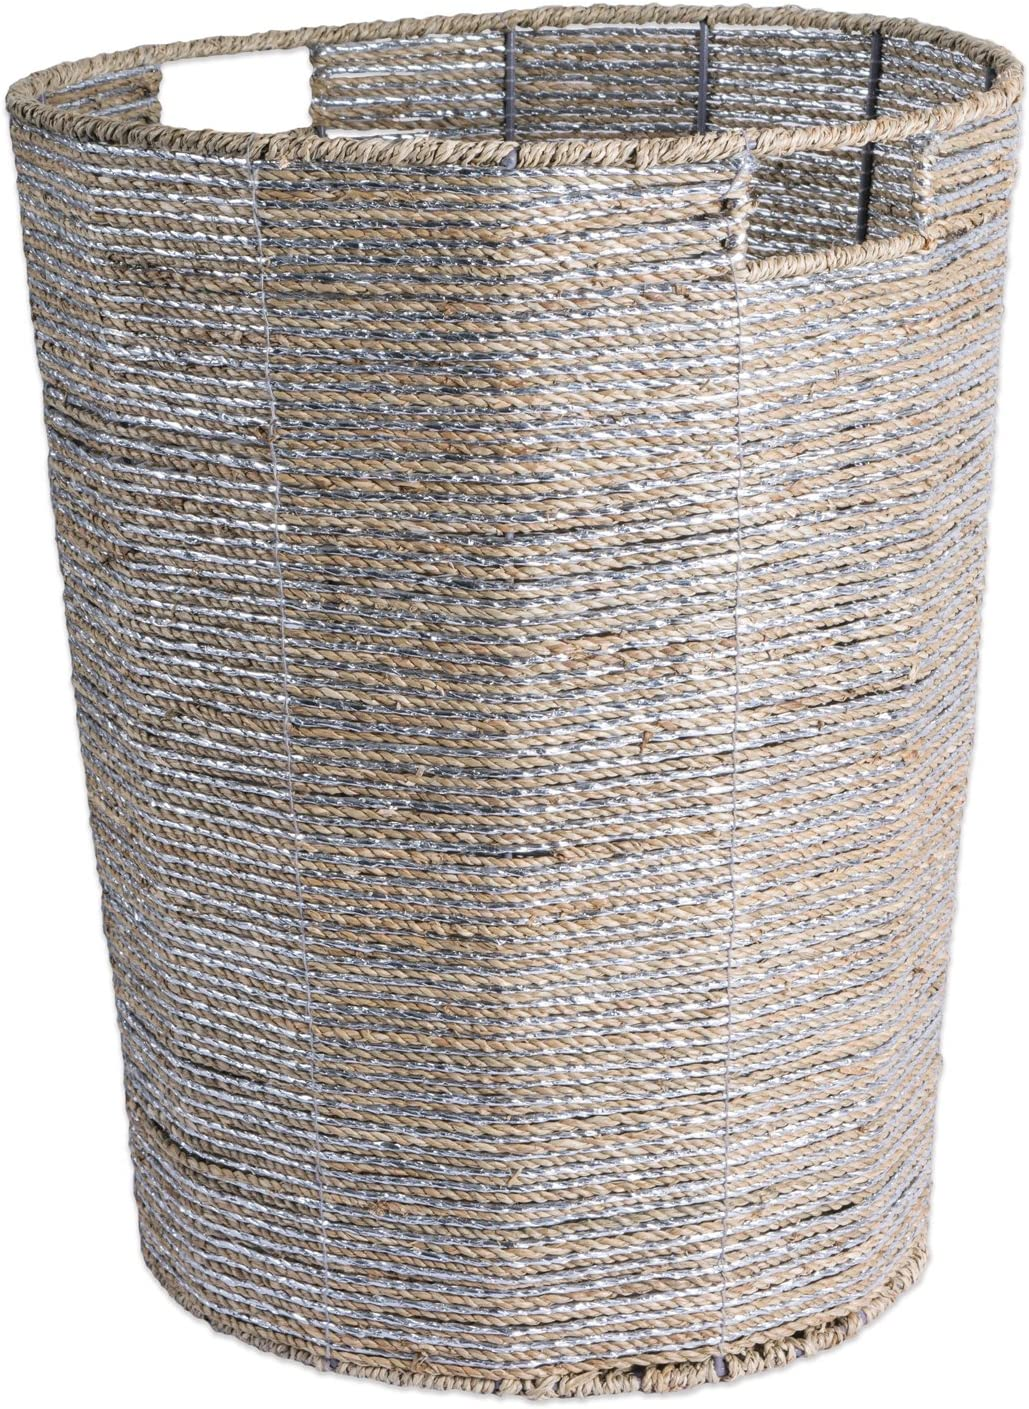 "DII CAMZ37612Decorative Woven Seagrass Laundry Hamper with Metallic for Bathroom & Home Organization Solutions to Enhance Décor & Add Functionality (Round Hamper - 16x20"") Silver"